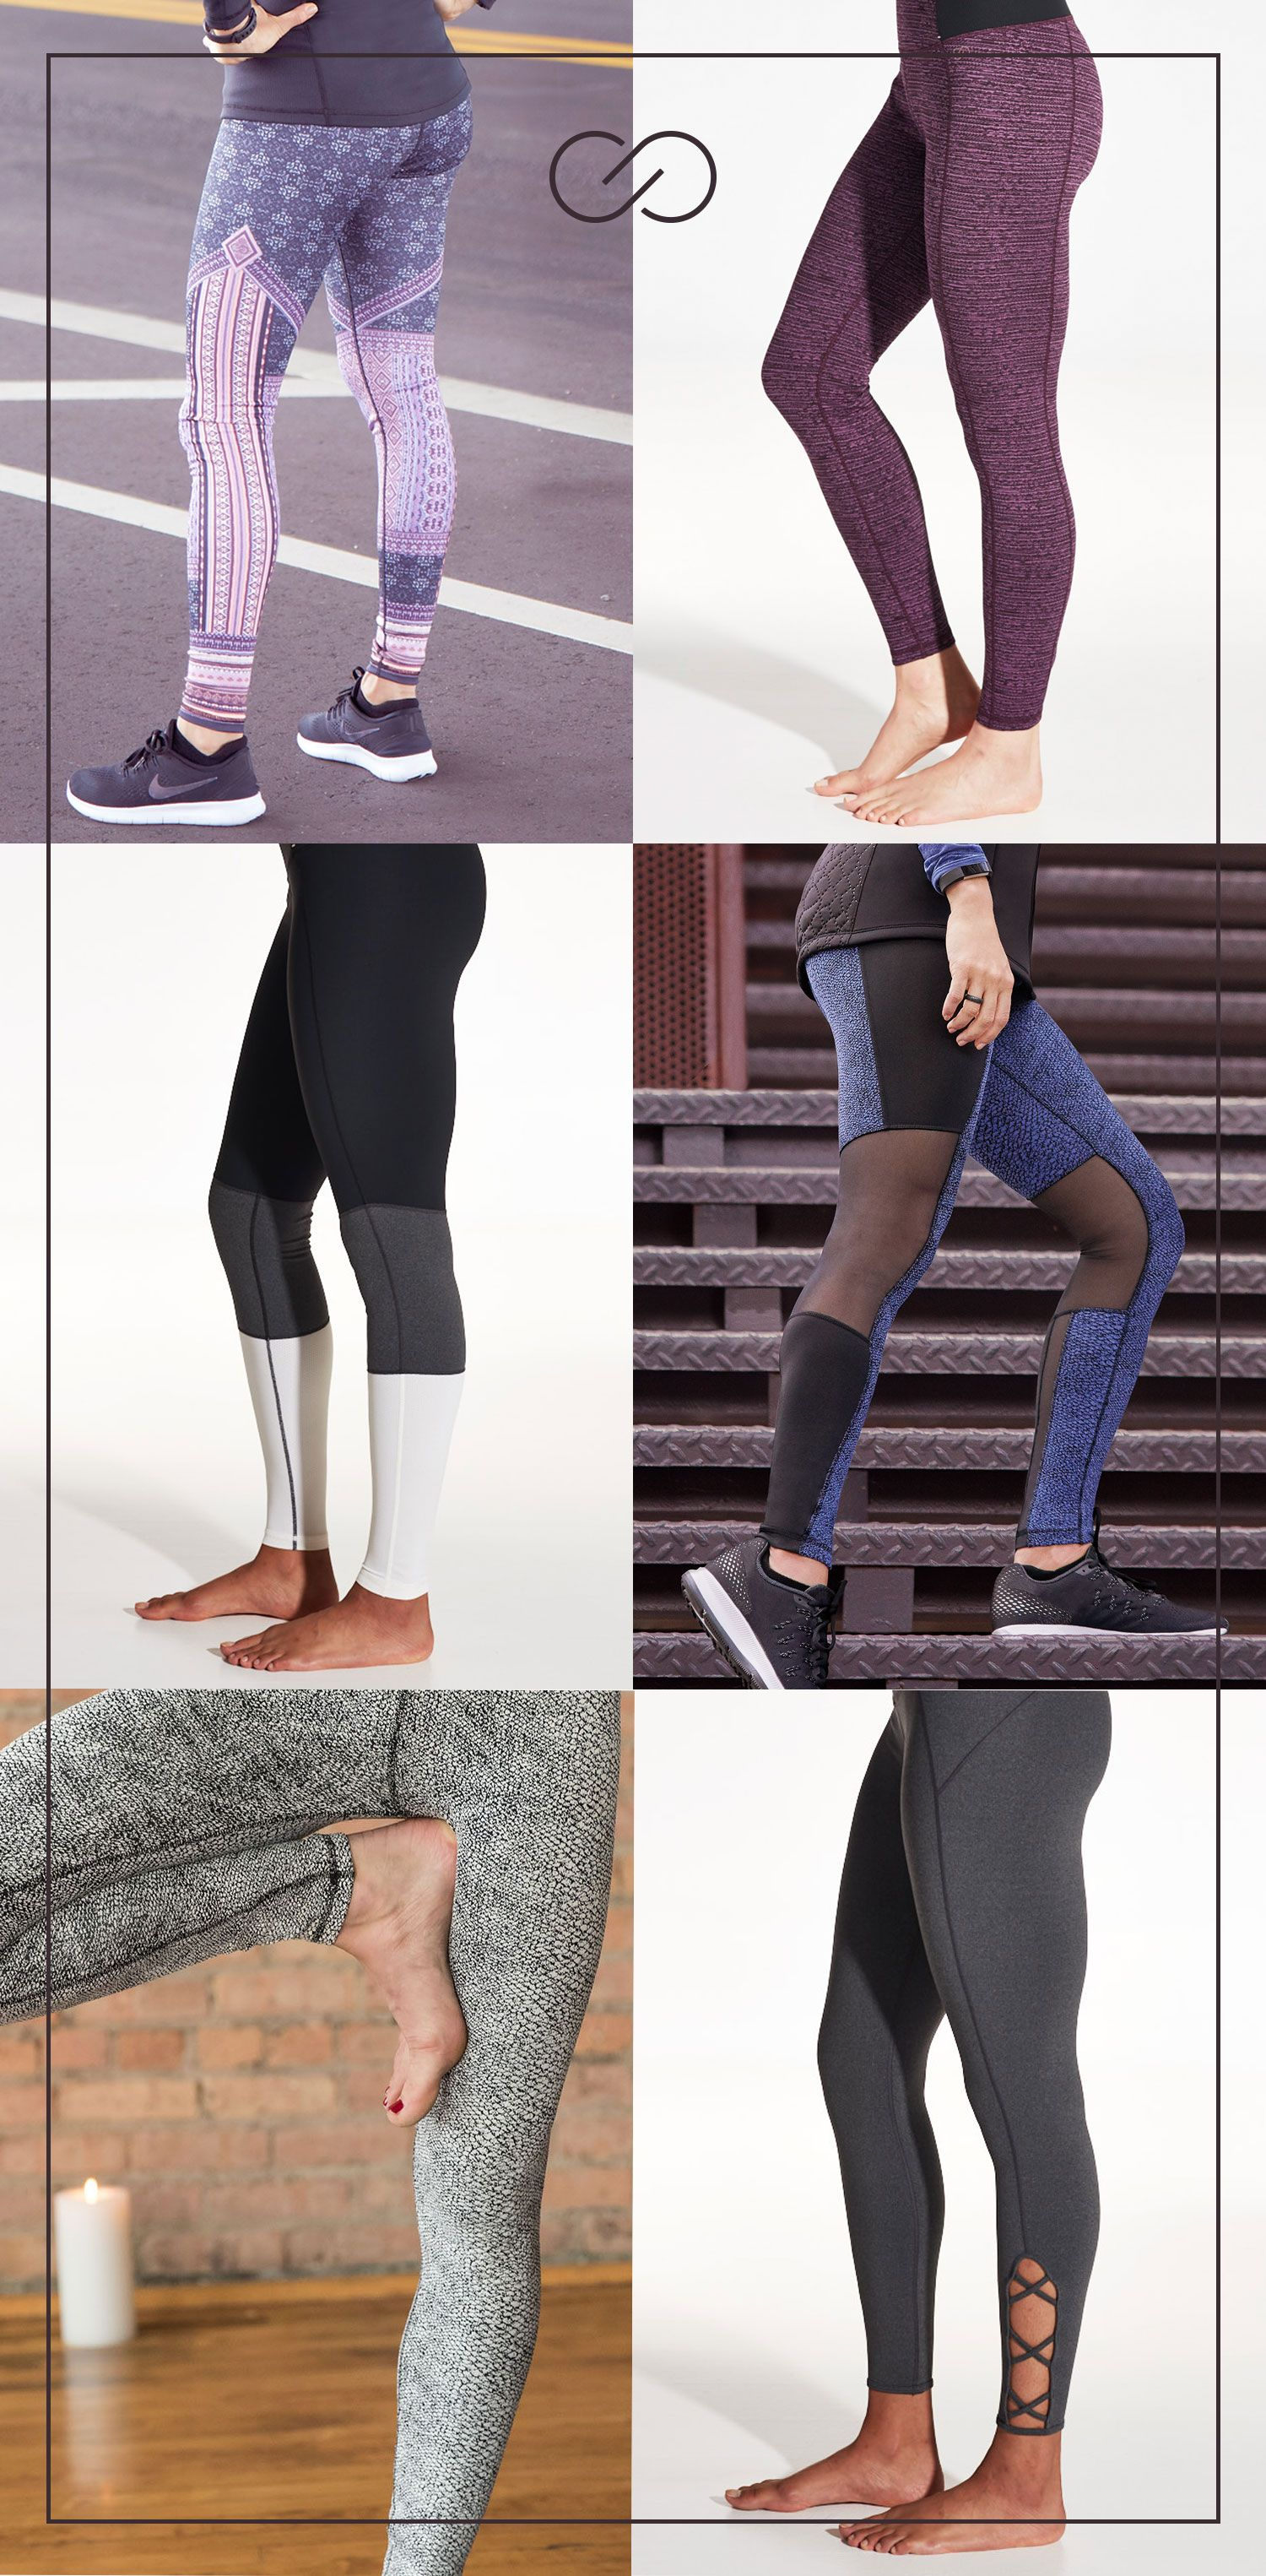 a6e7fffd852c0d Show your legs some love with cute and comfortable leggings designed to  match every style.   CALIA by Carrie Underwood